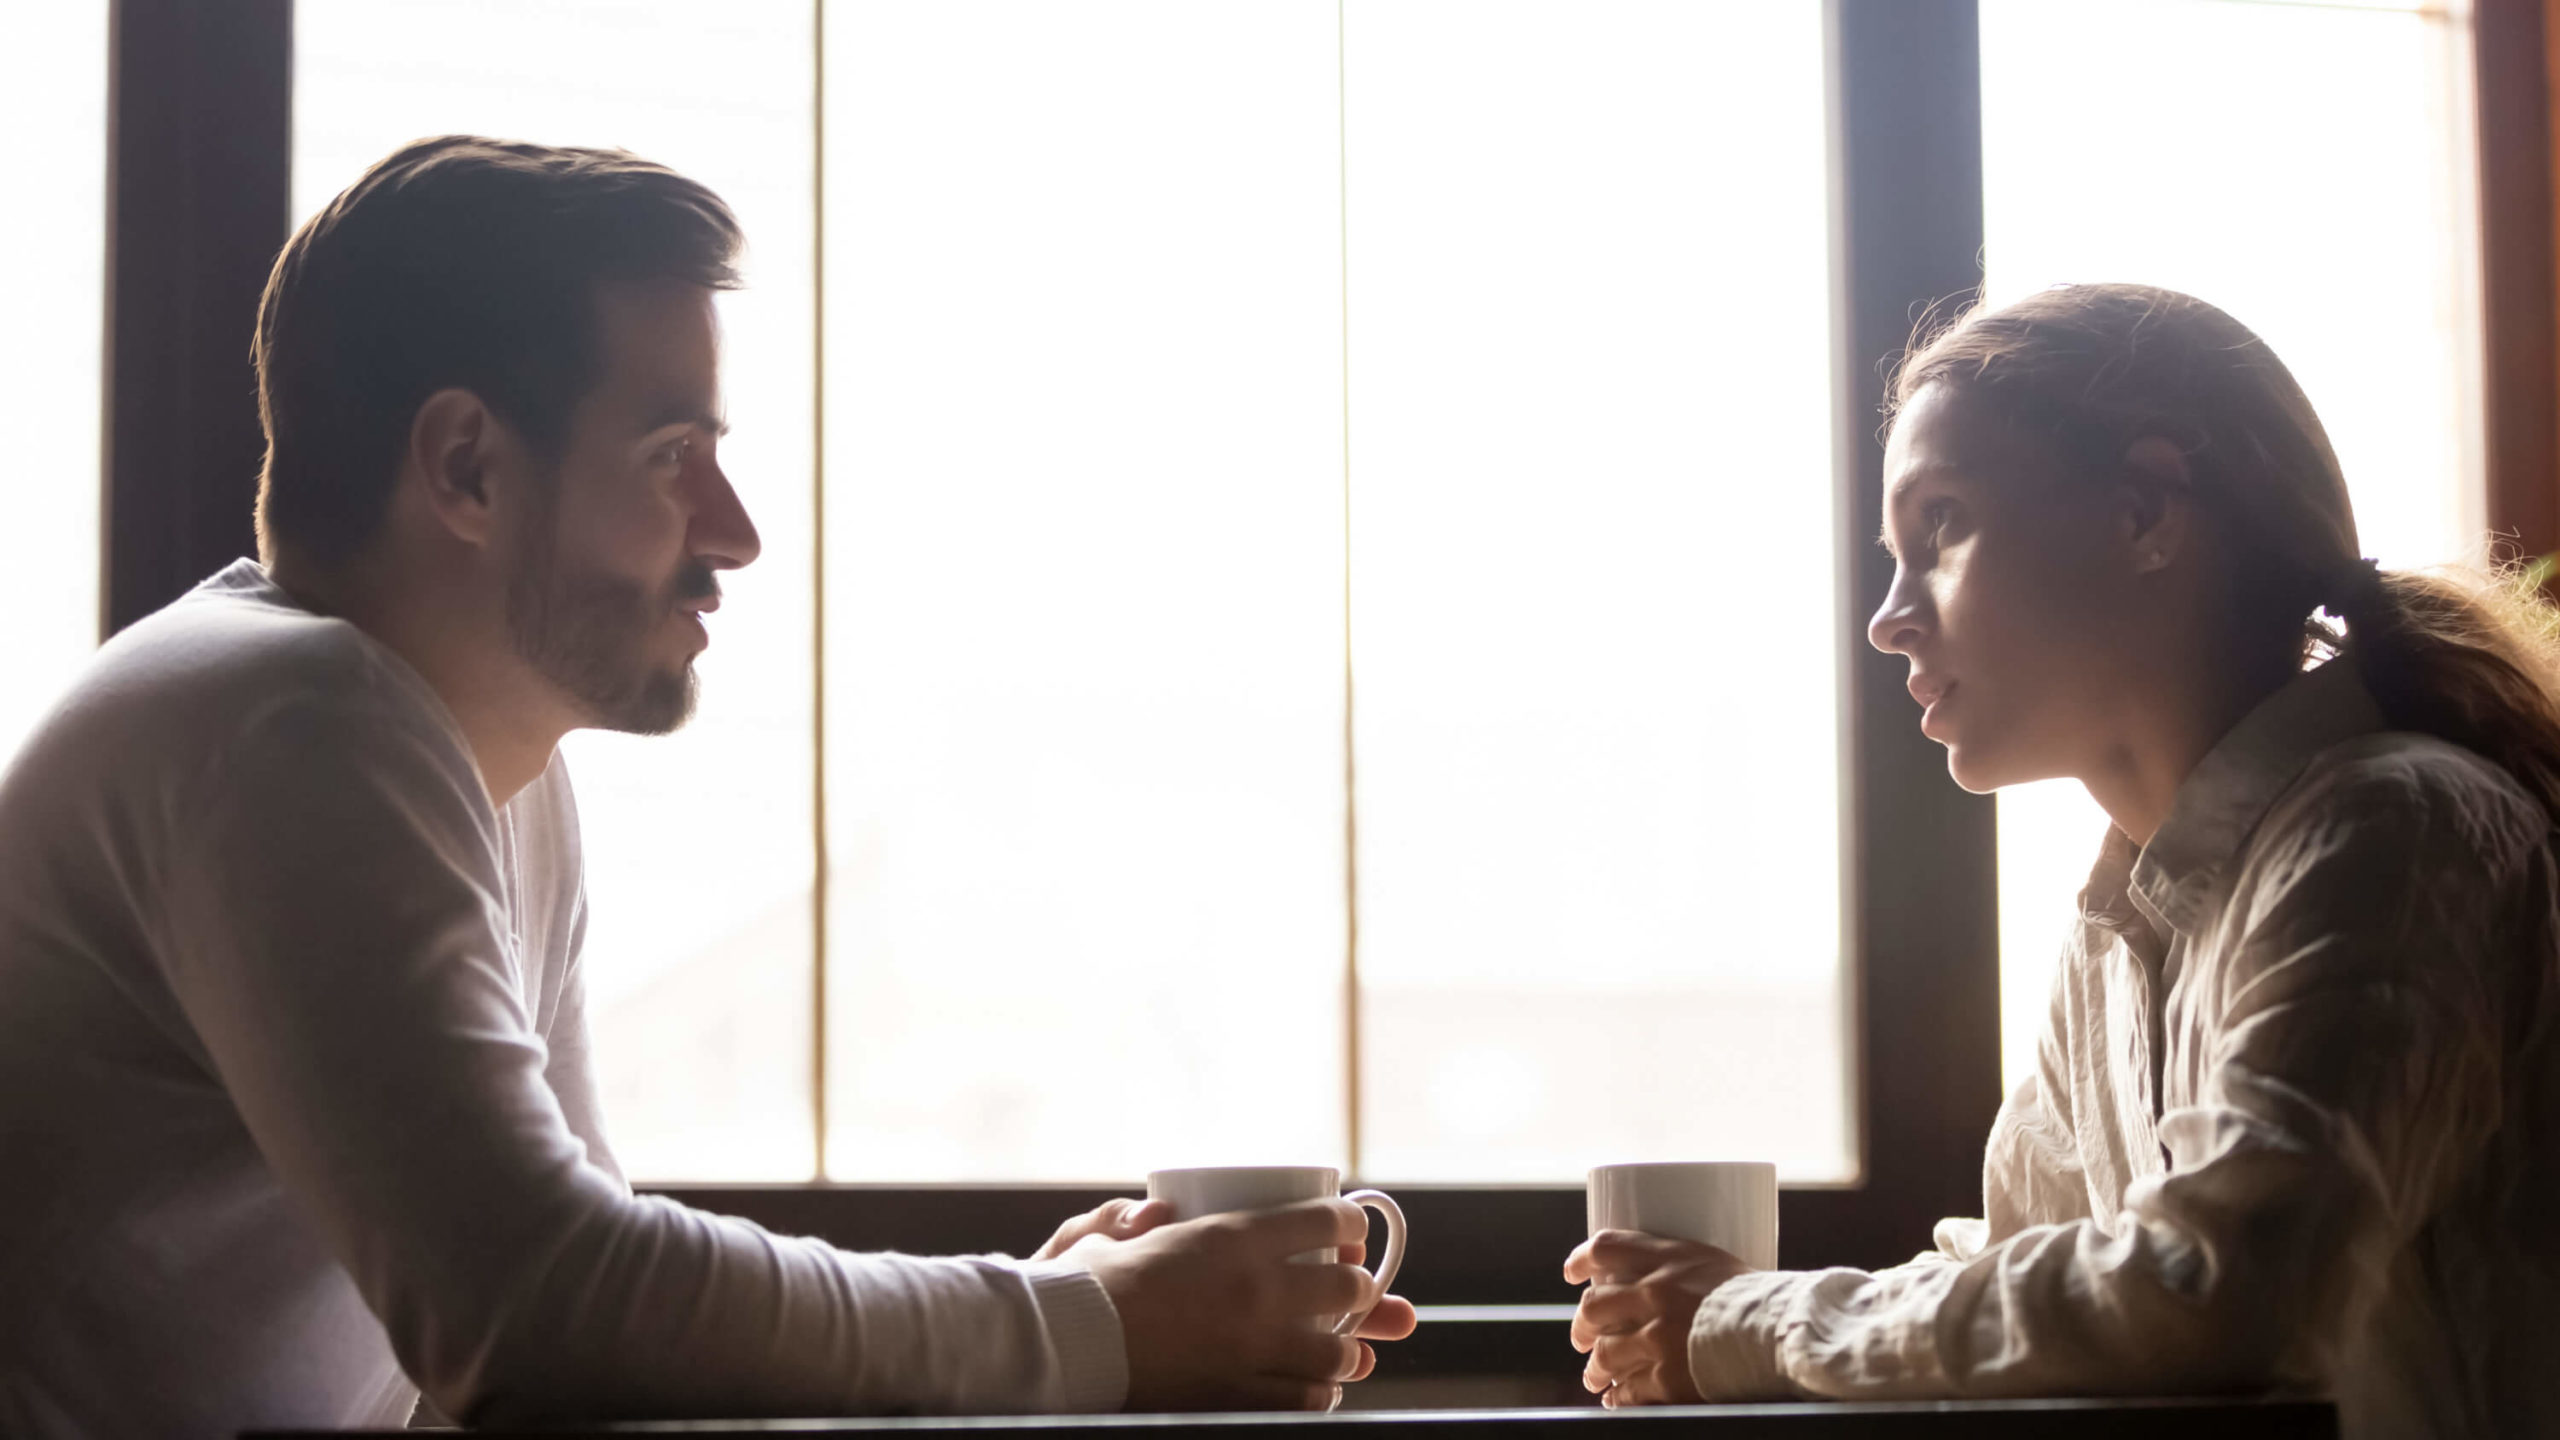 A young man and woman sit at a table and talk over a cup of coffee